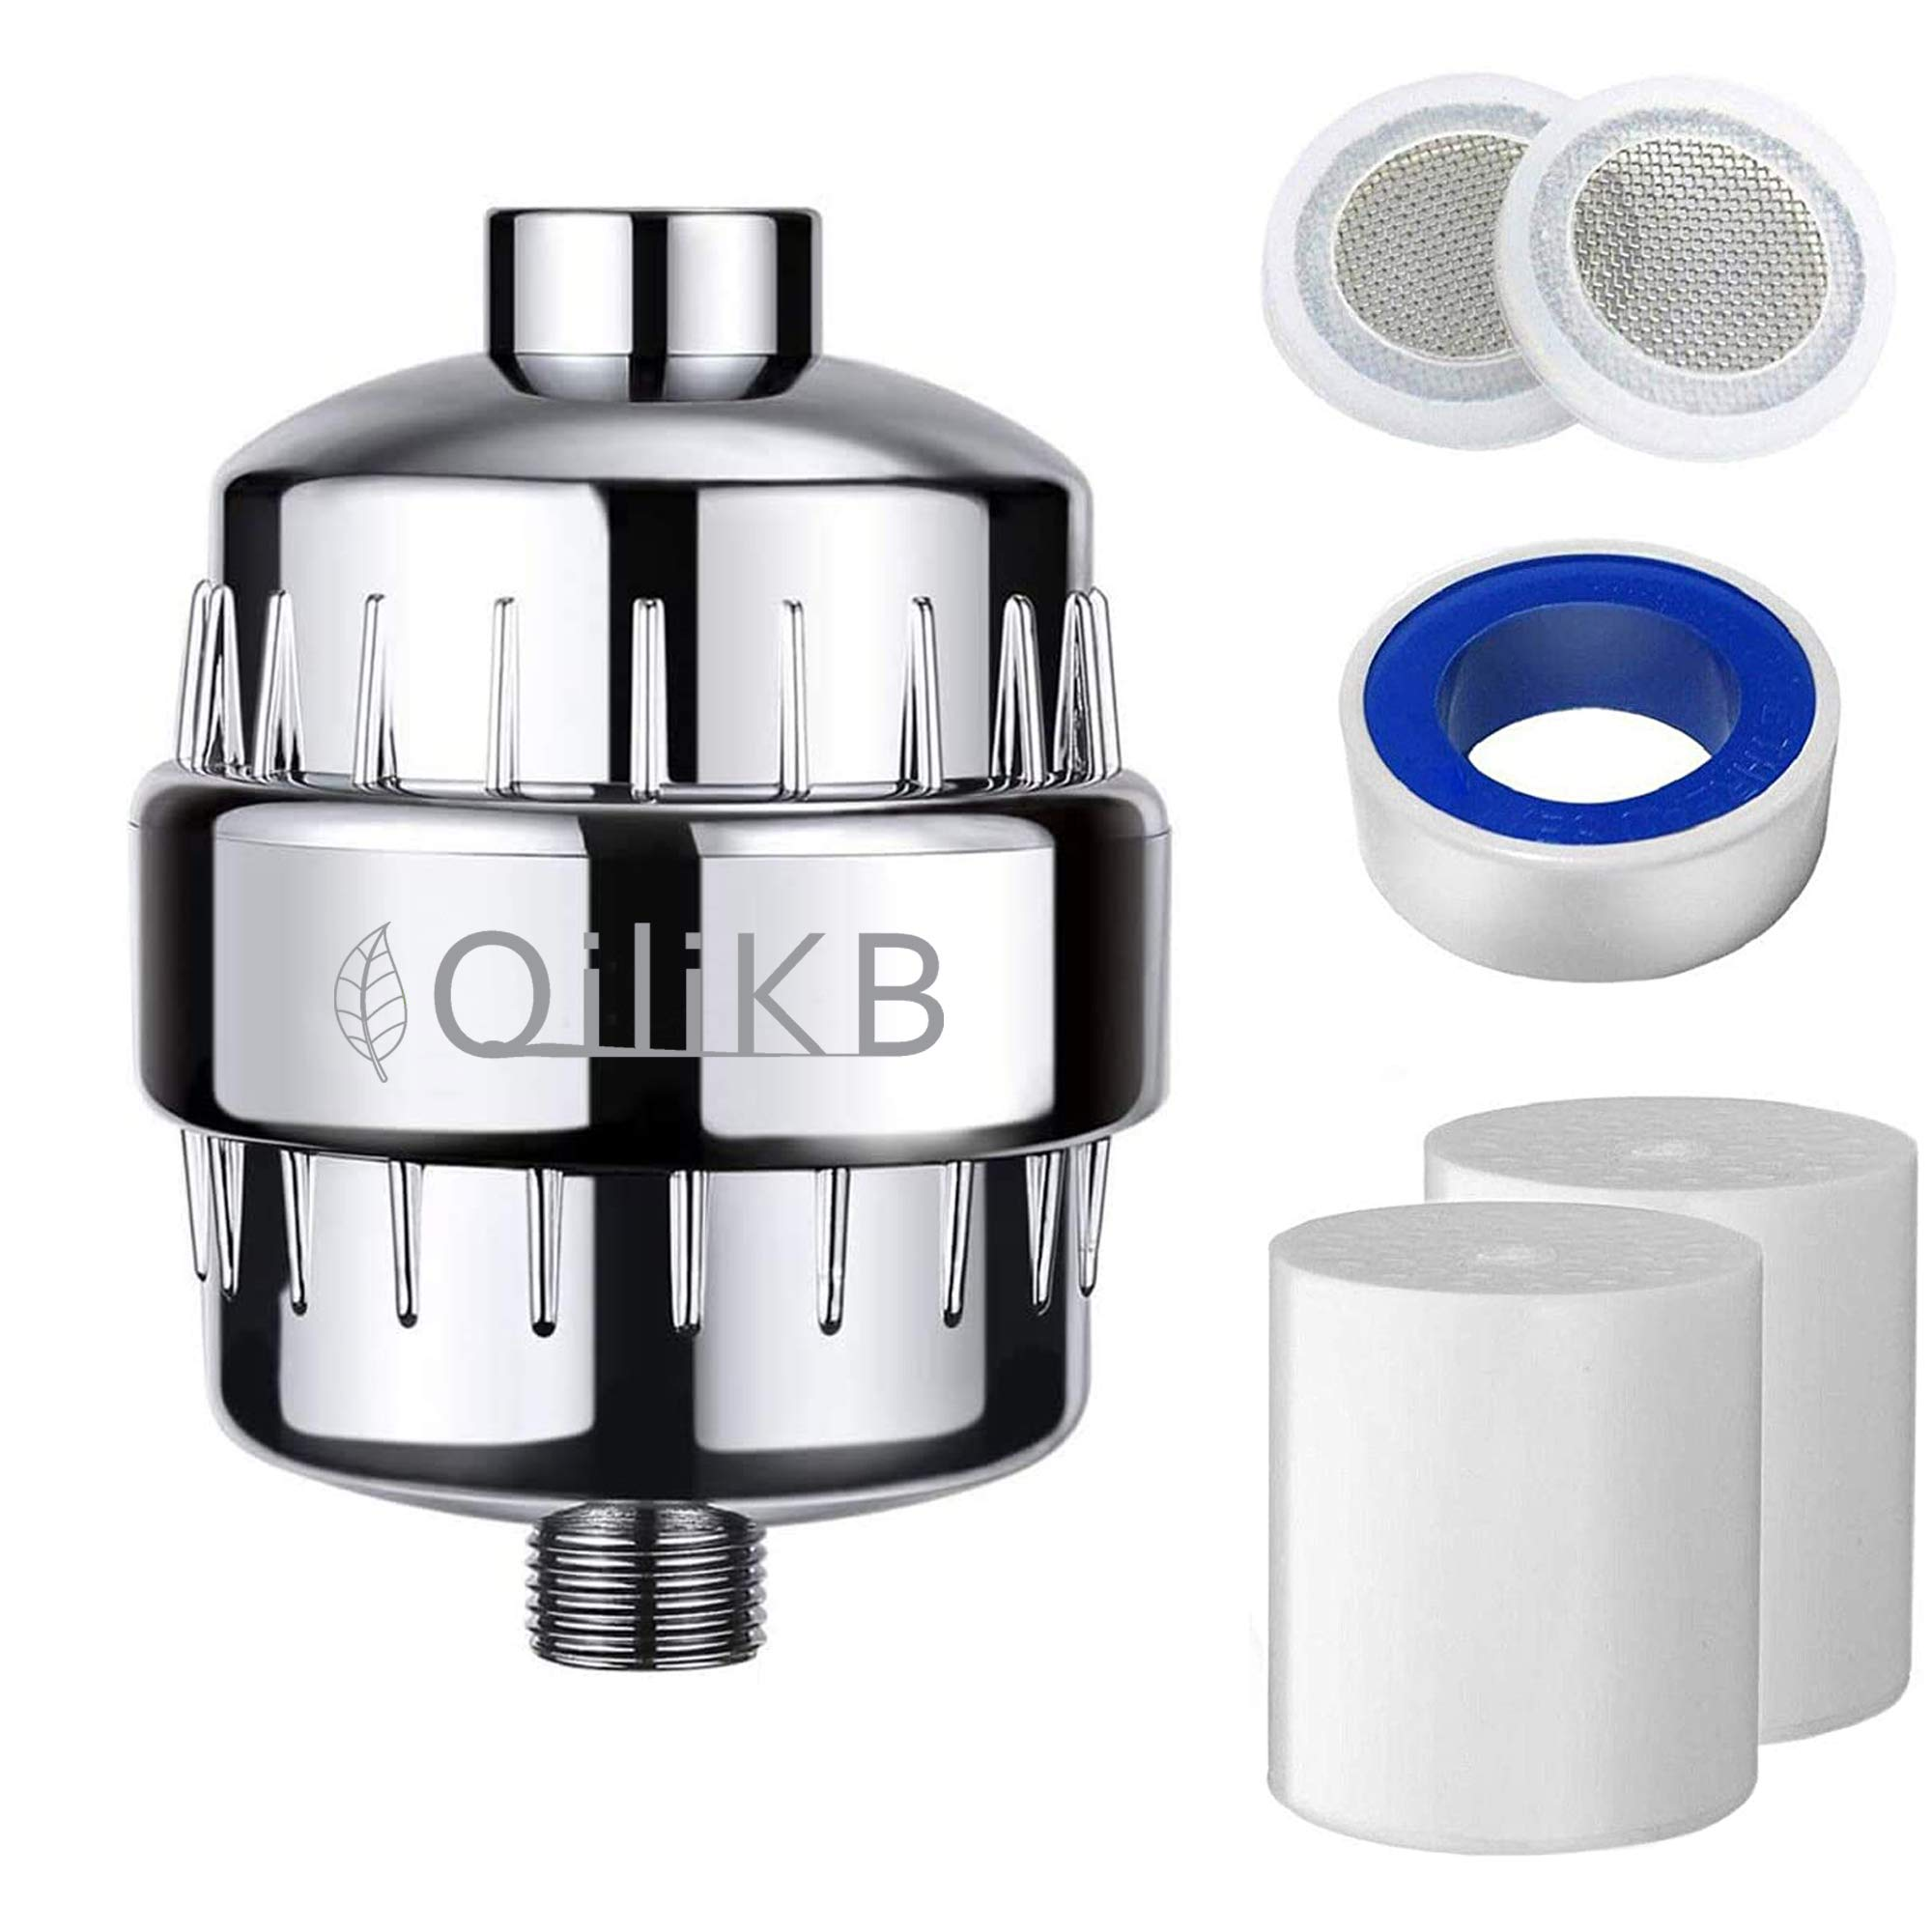 QiliKB 15 Stage Shower Filter for Hard Water – High Output Shower